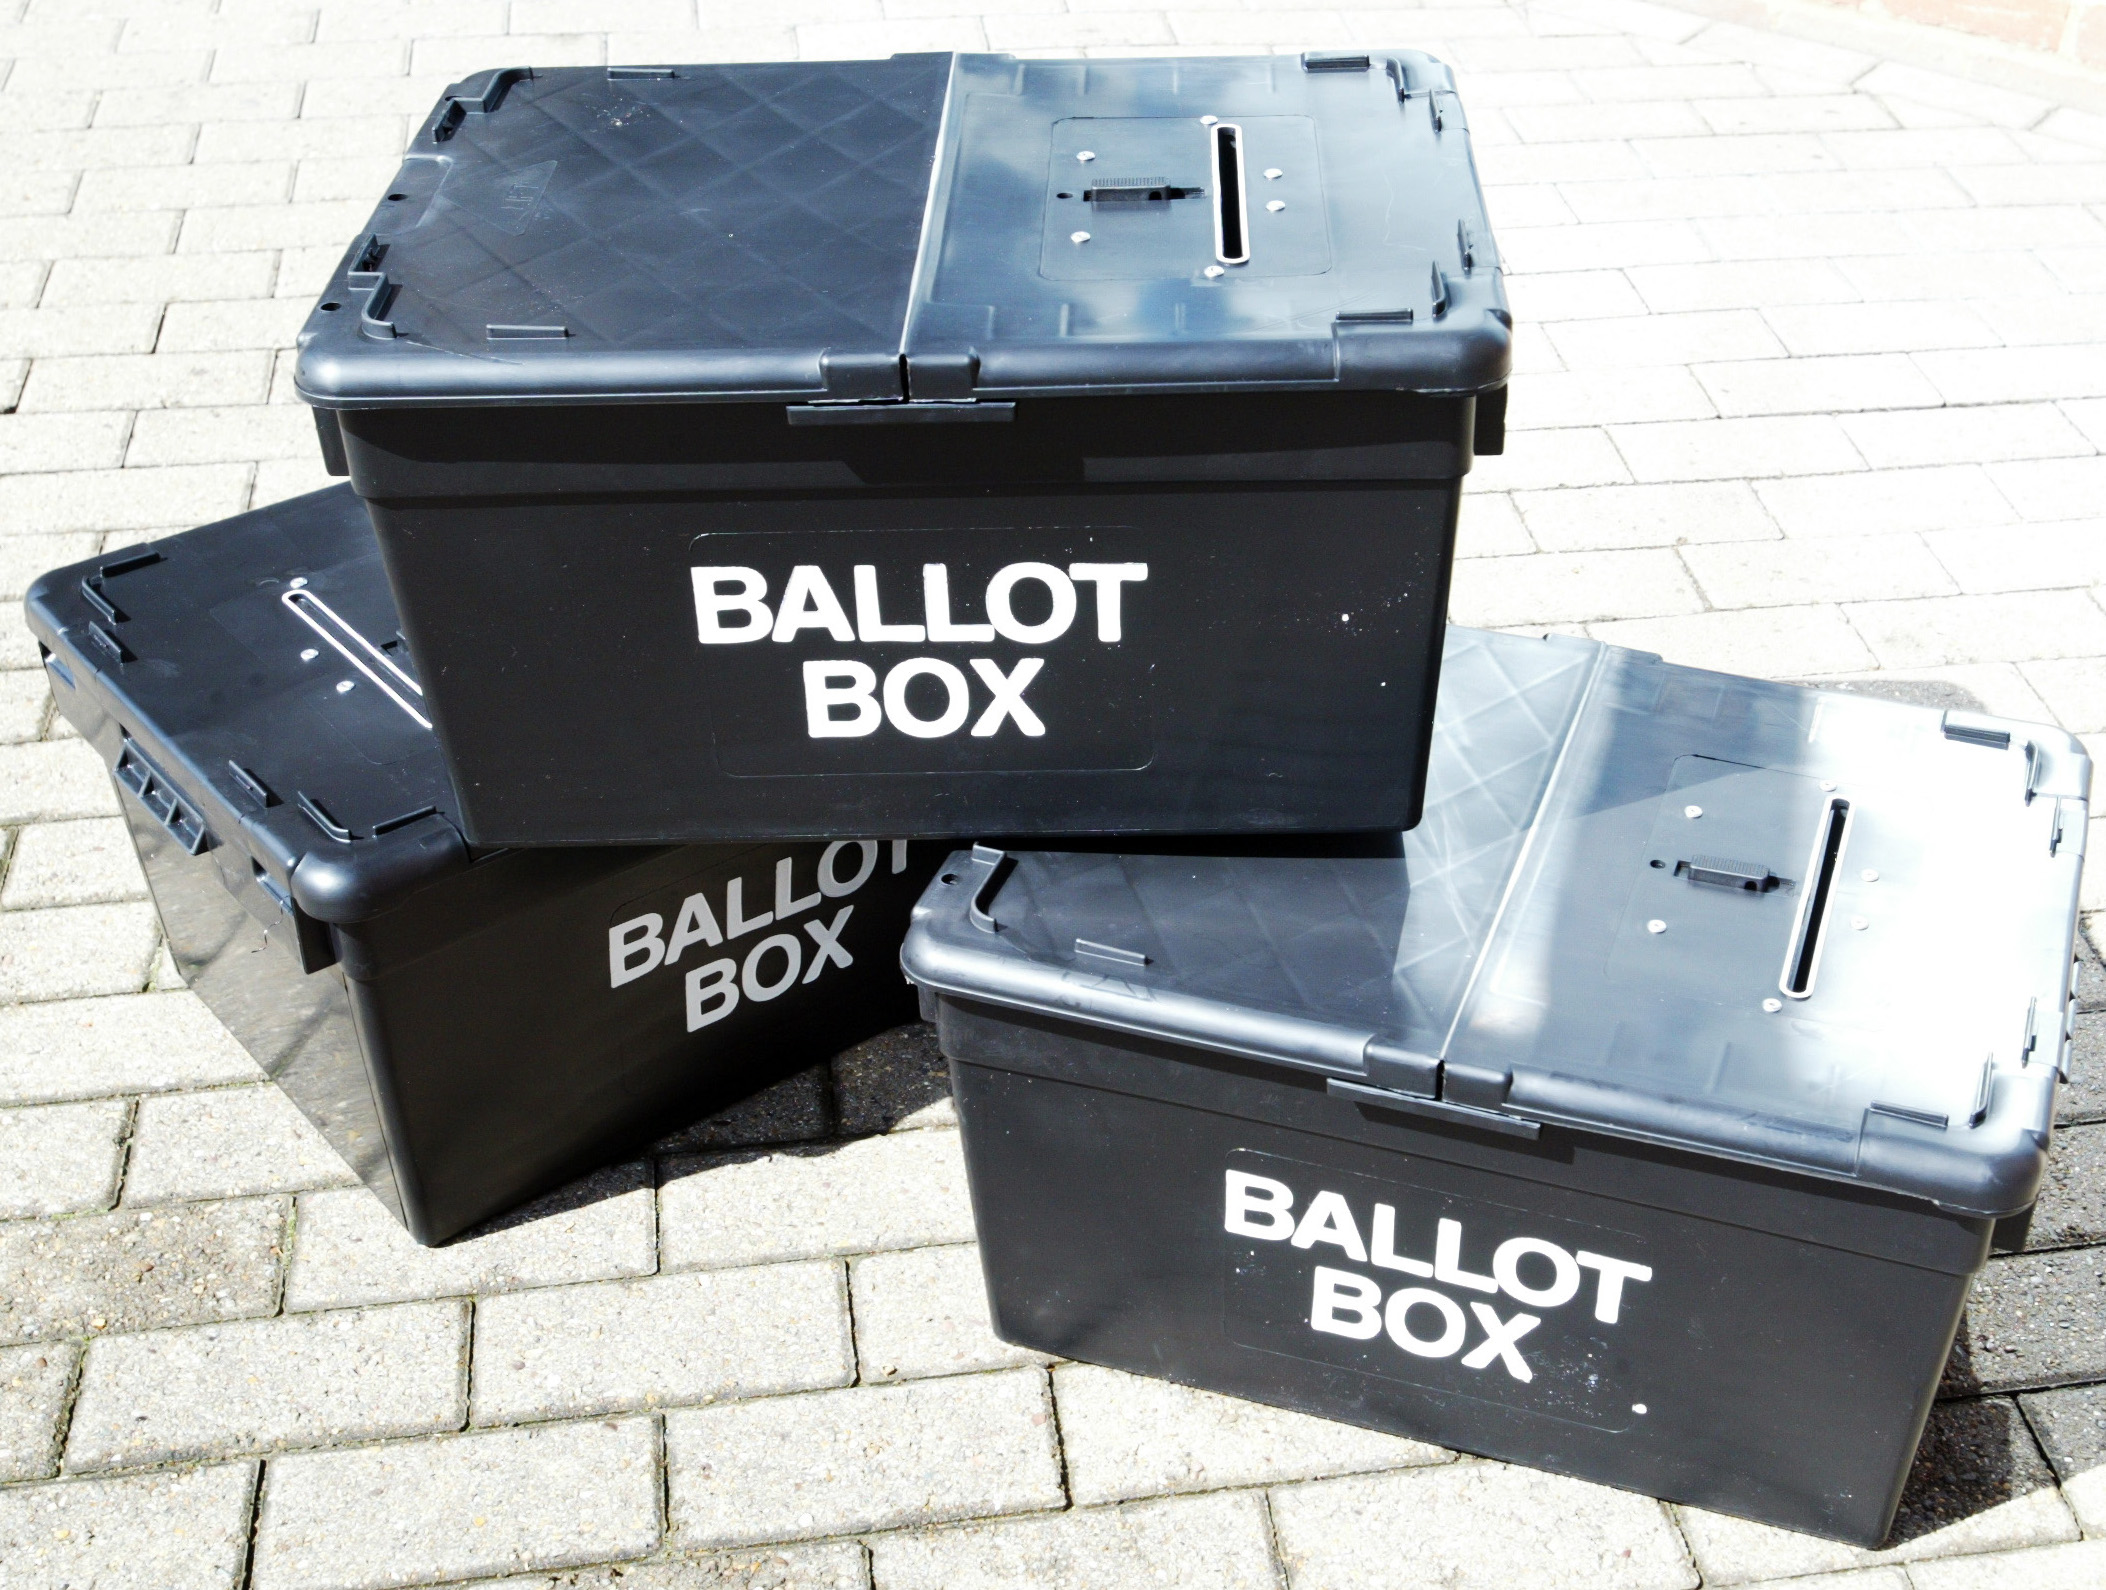 Residents can call for Cleobury vote